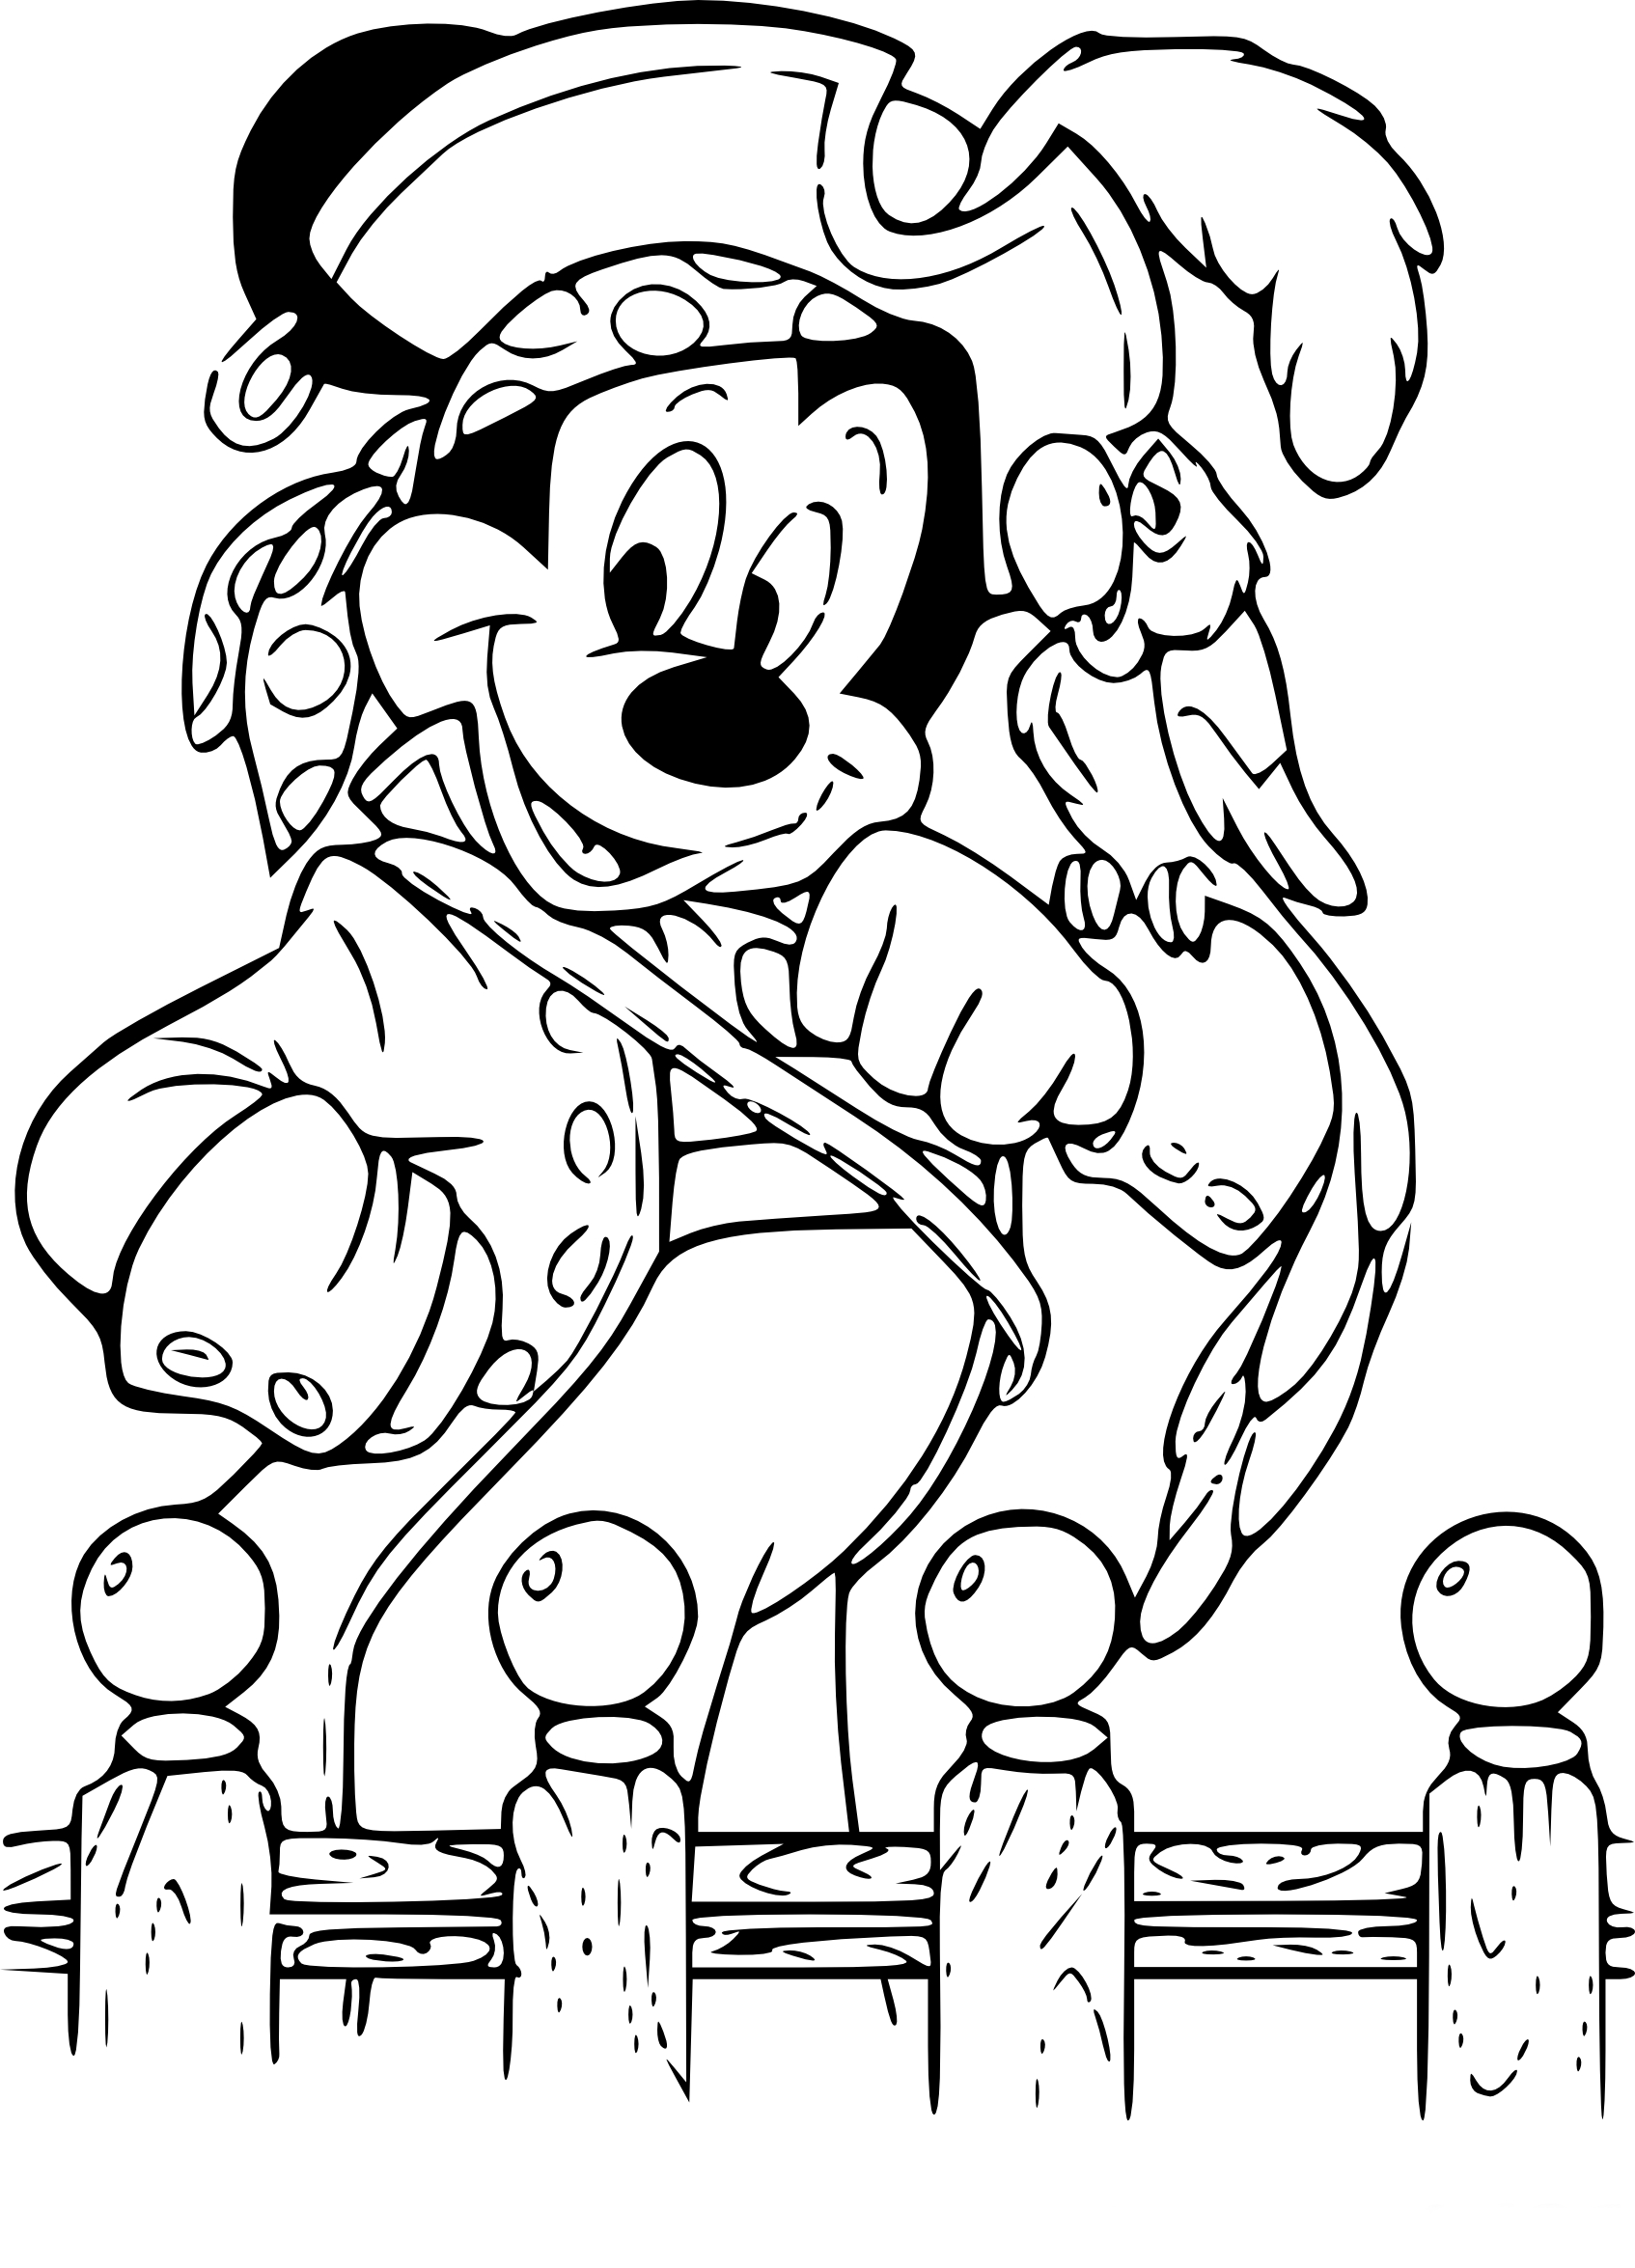 Coloriage mickey pirate imprimer - Imprimer coloriages ...